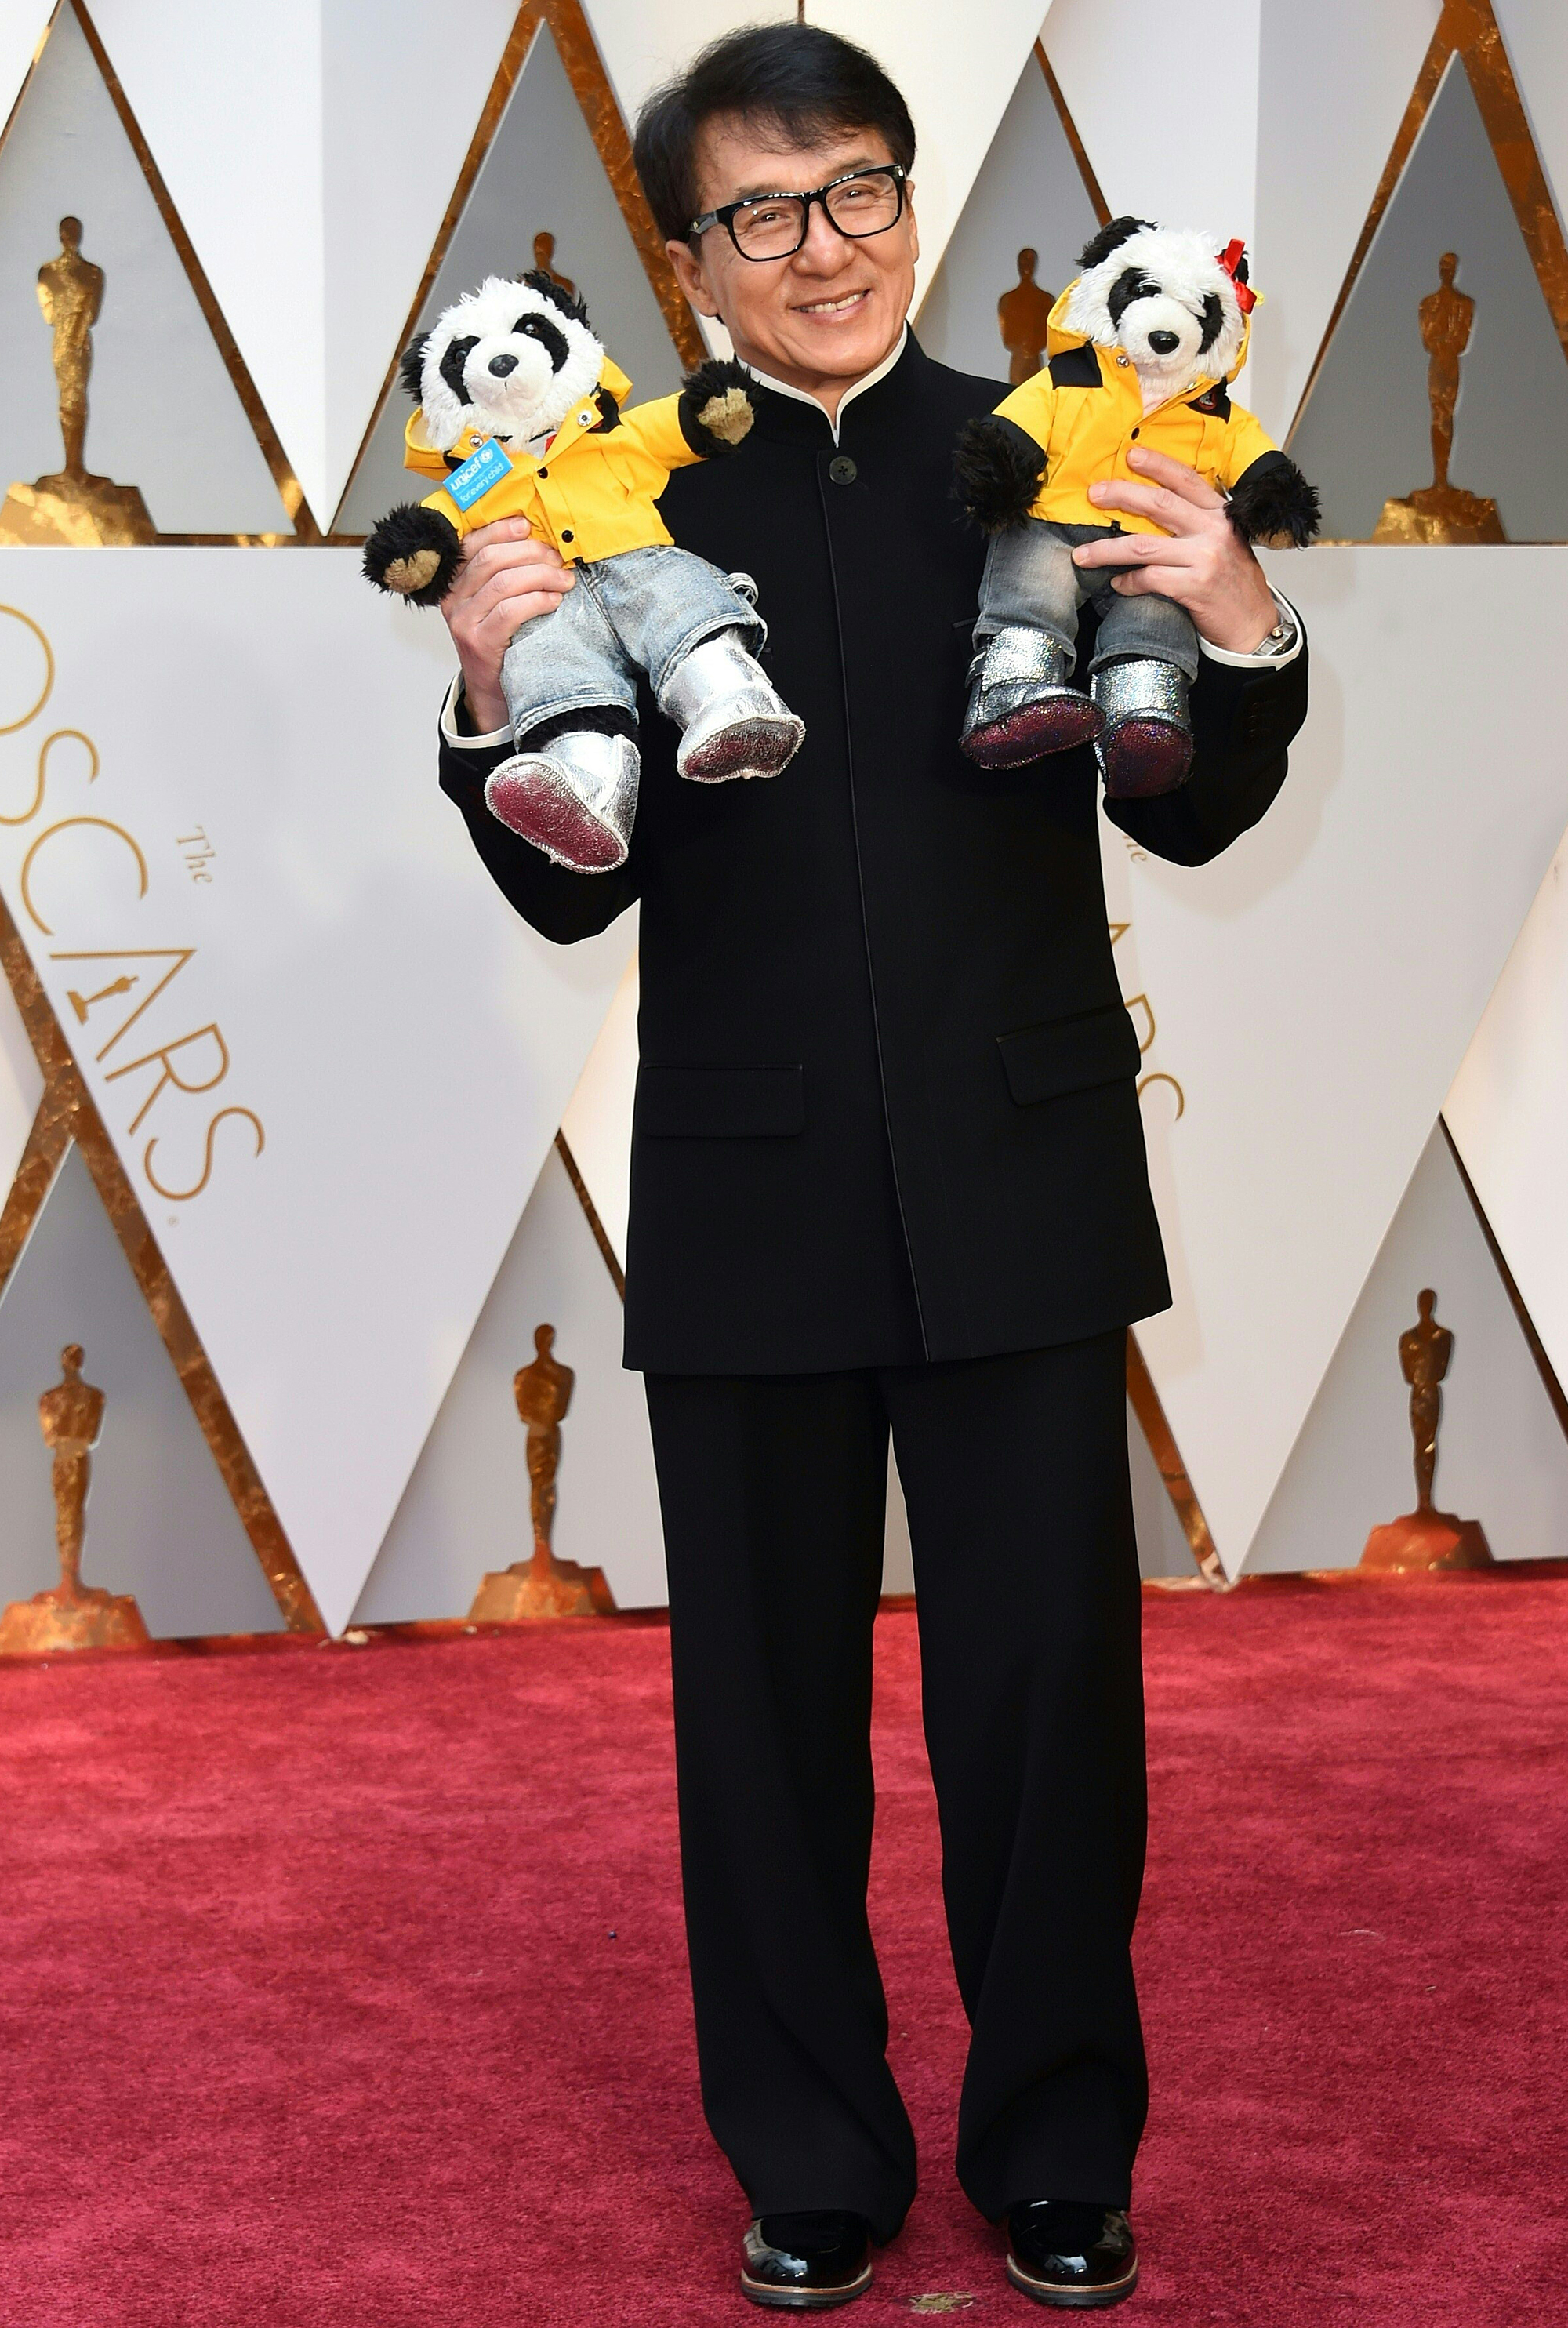 Jackie Chan on the red carpet for the 89th Oscars, on Feb. 26, 2017 in Hollywood, Calif.